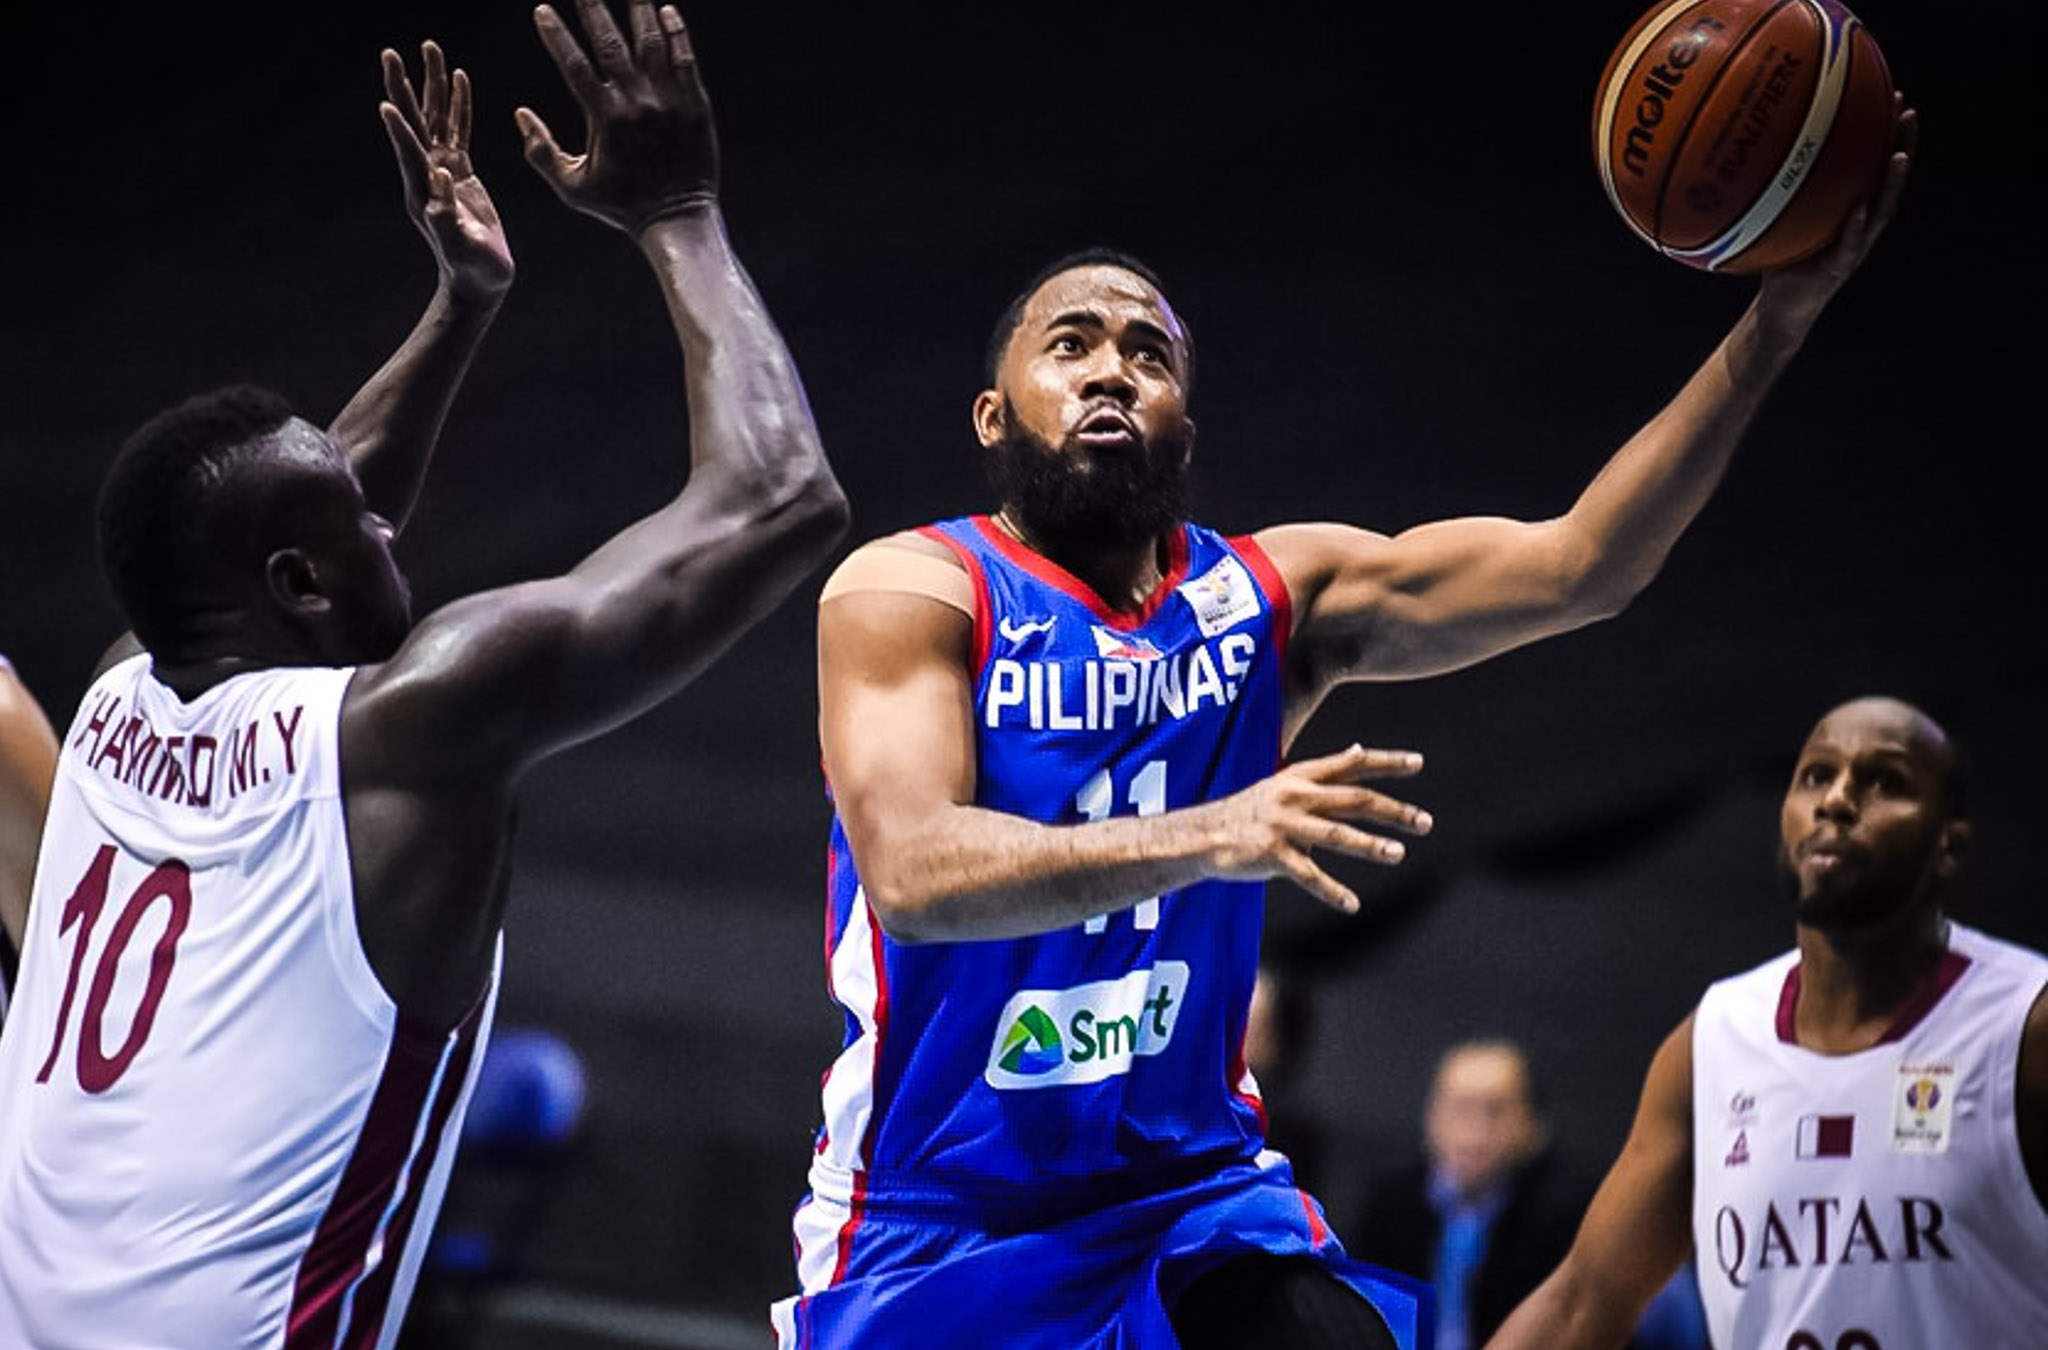 Gilas Pilipinas stages huge comeback to beat Qatar